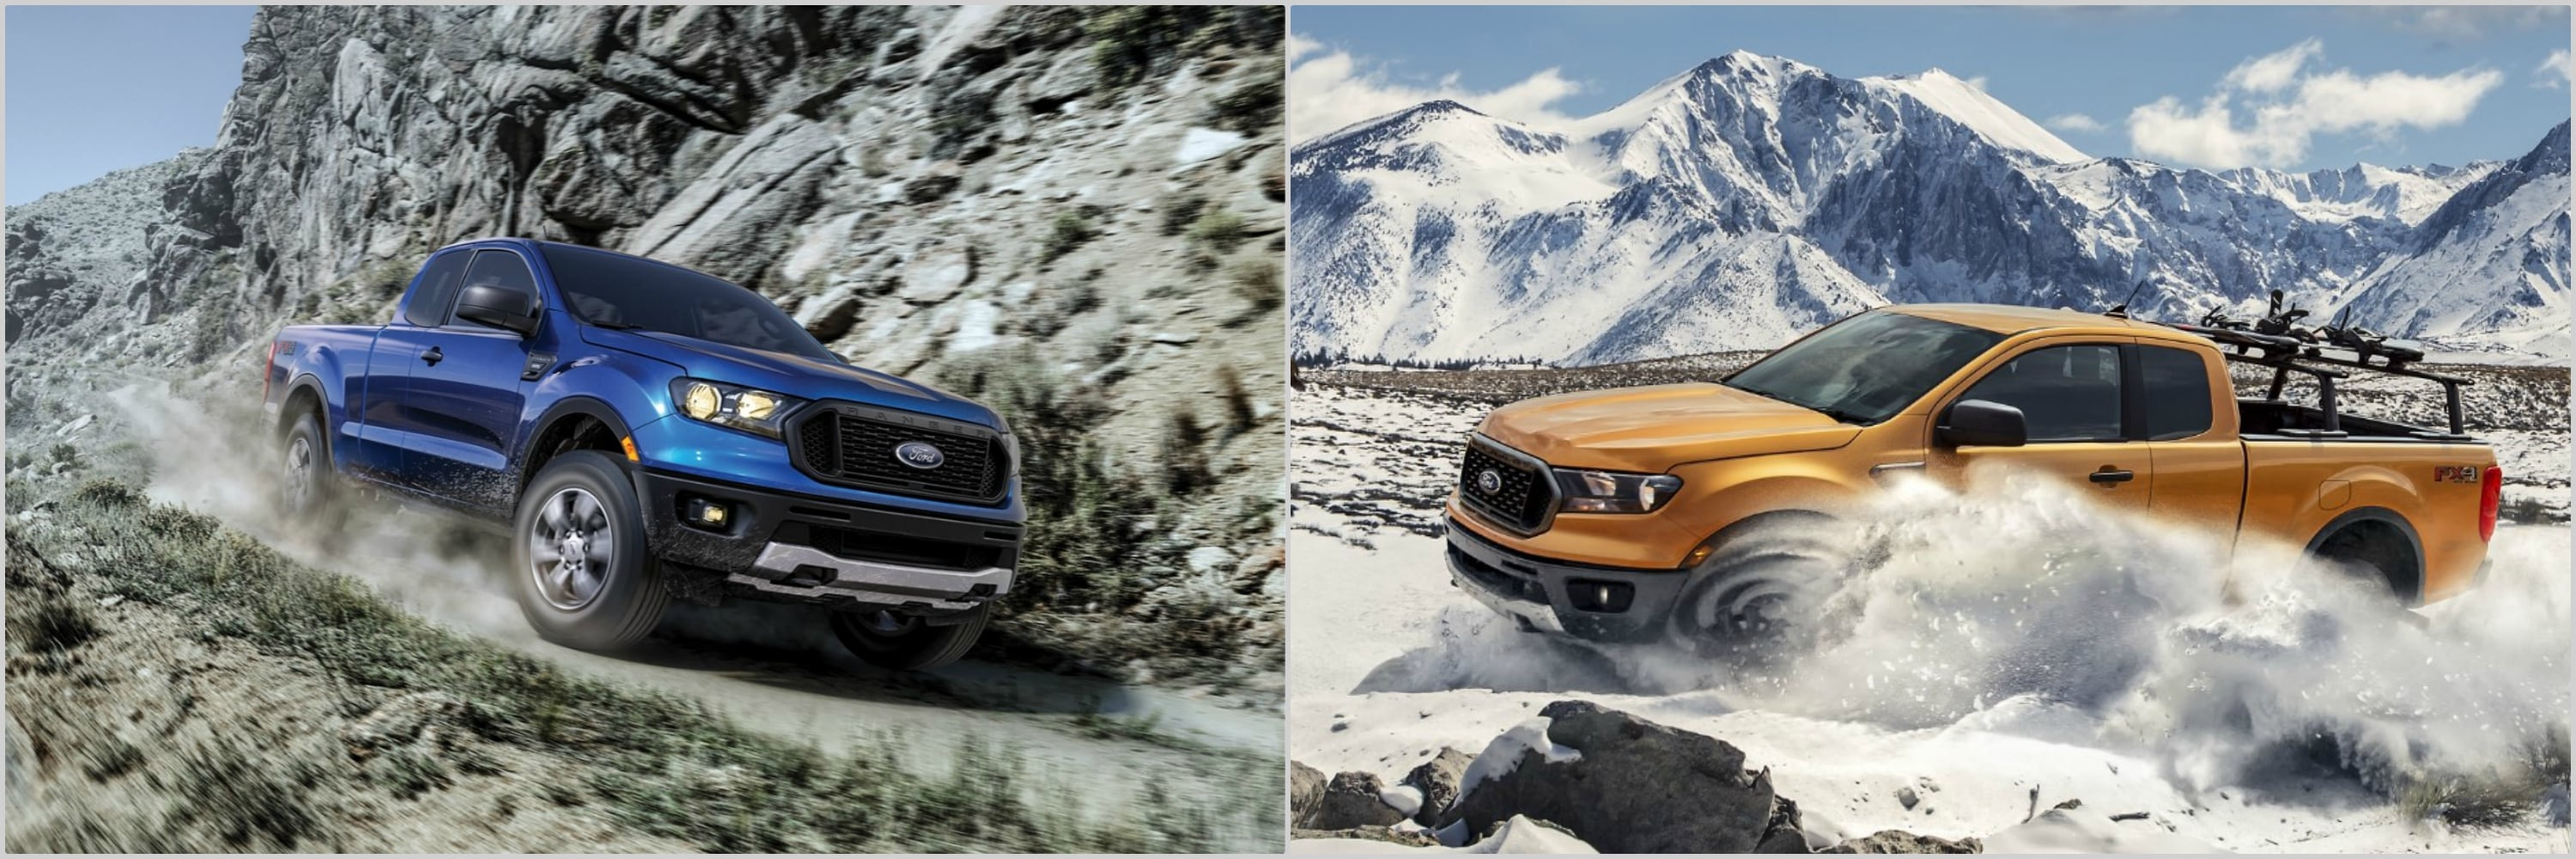 a blue 2021 Ford Ranger driving down a rocky mountain road side-by-side a 2020 Ford Ranger driving up a snow covered desert road